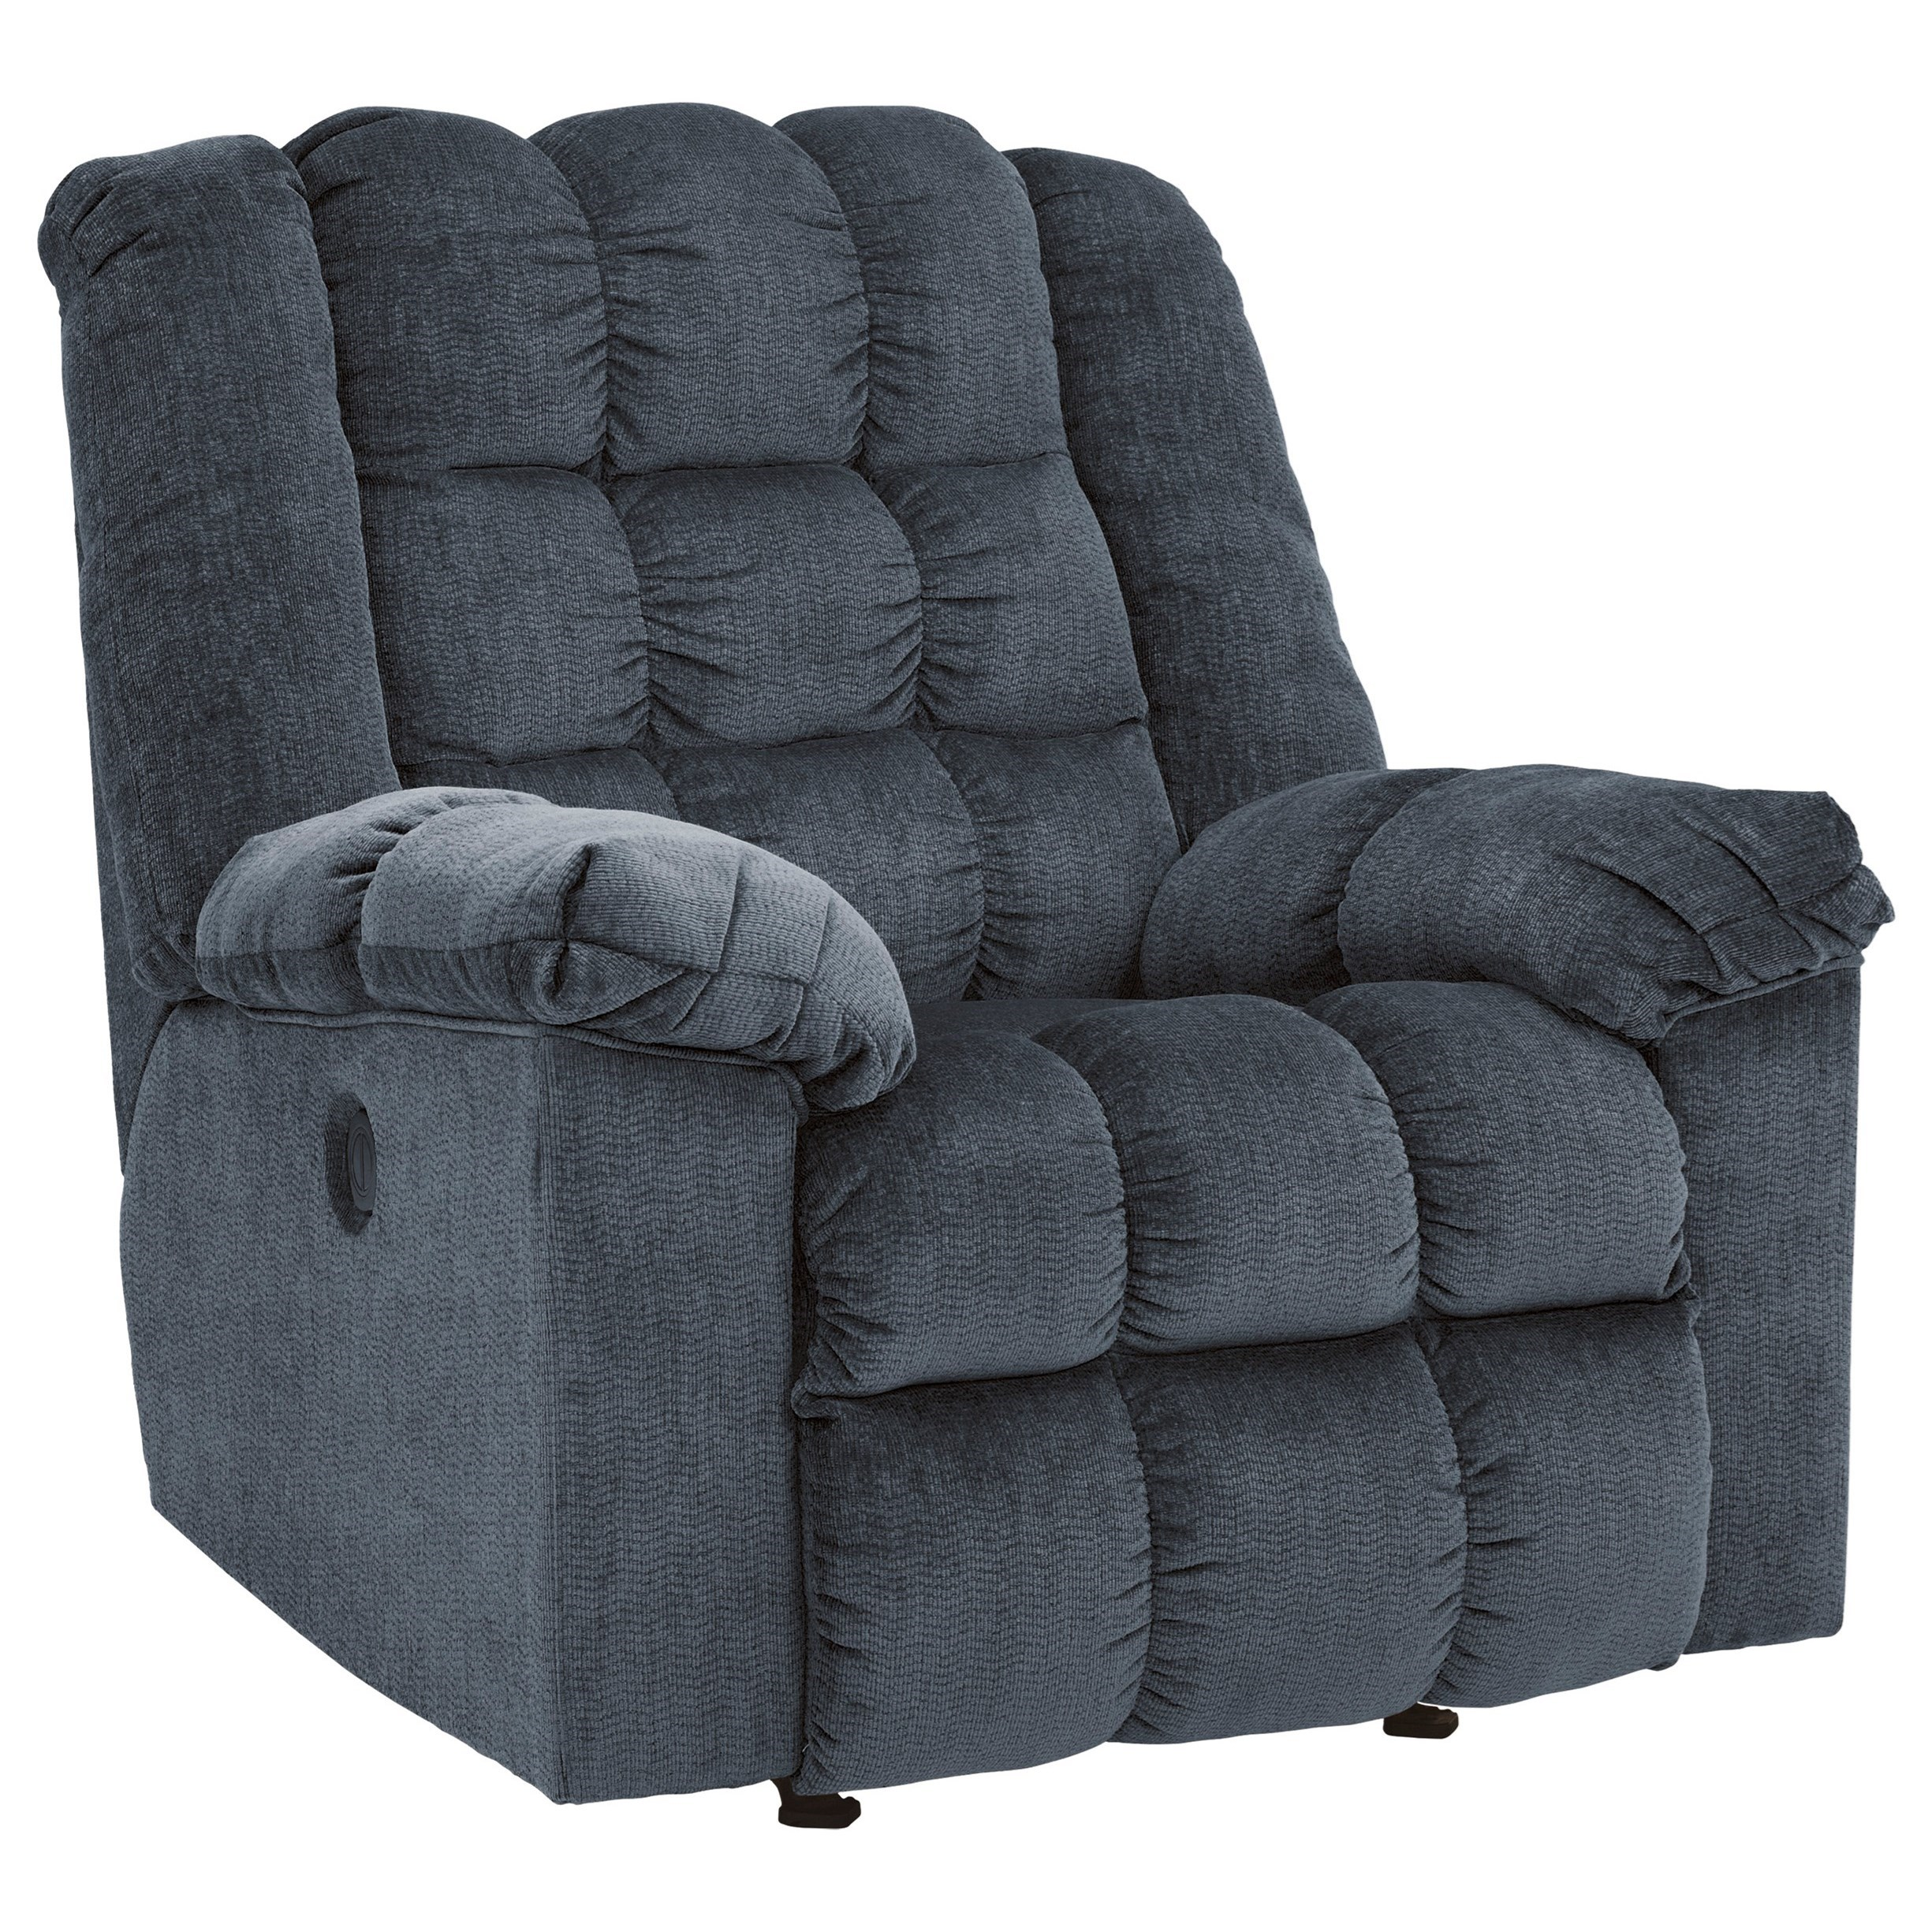 Signature Design by Ashley Ludden - Blue Power Rocker Recliner - Item Number: 8110598